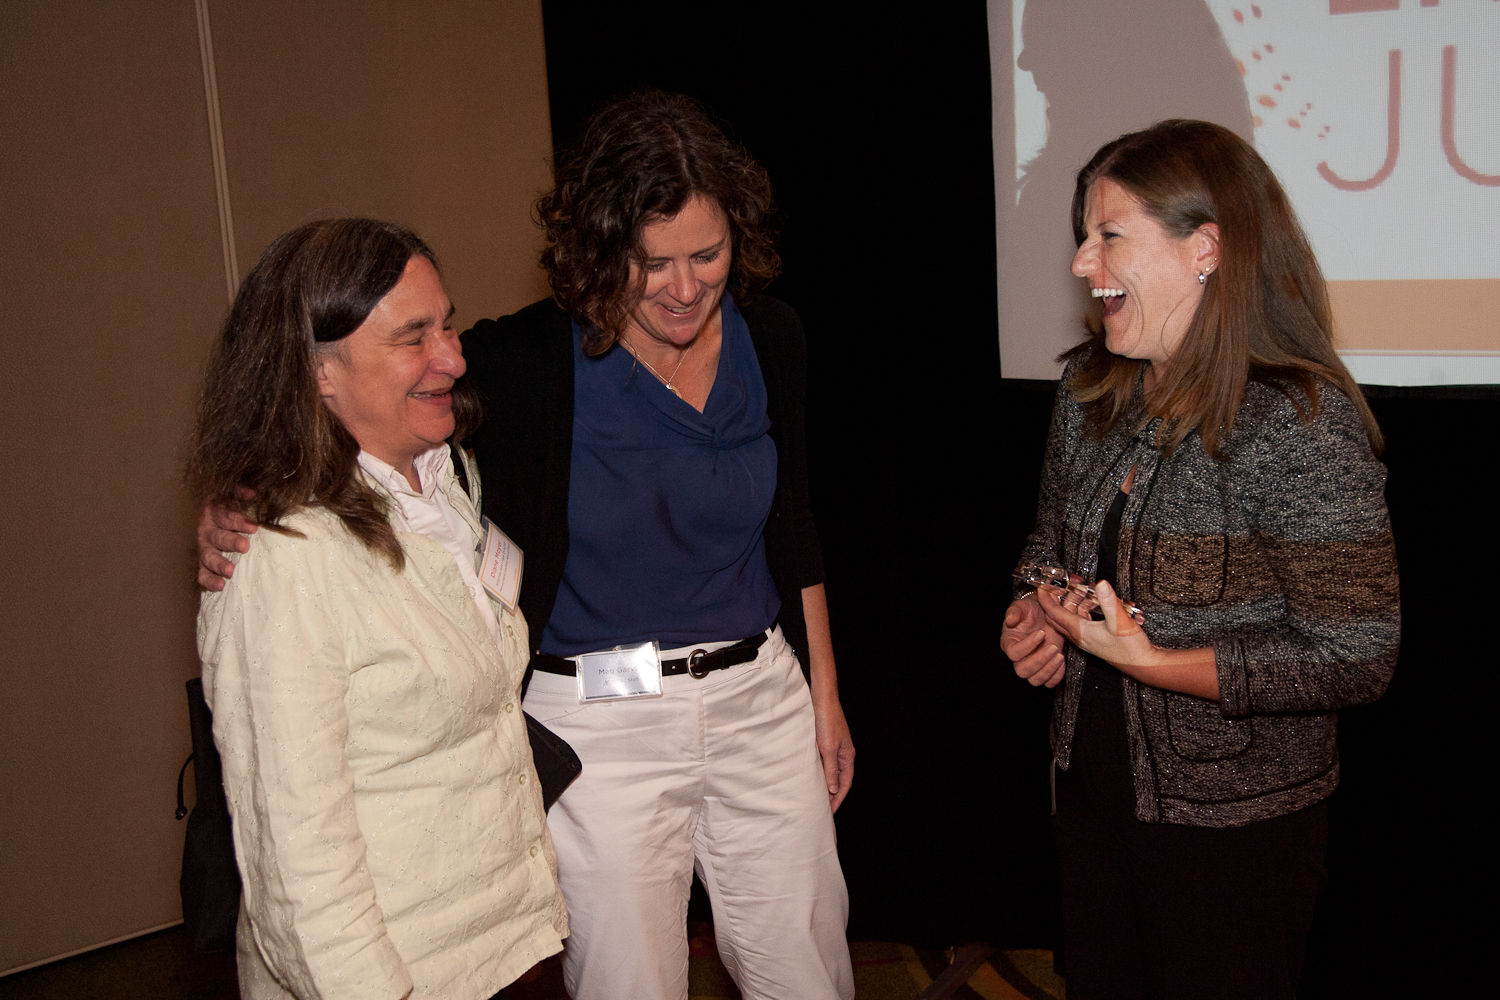 Meg Garvin laughs with NCVLI Board Member Diane Moyer and recipient of the 2012 Gail Burns-Smith Excellence in Victim Service Award, Jennifer Storm.